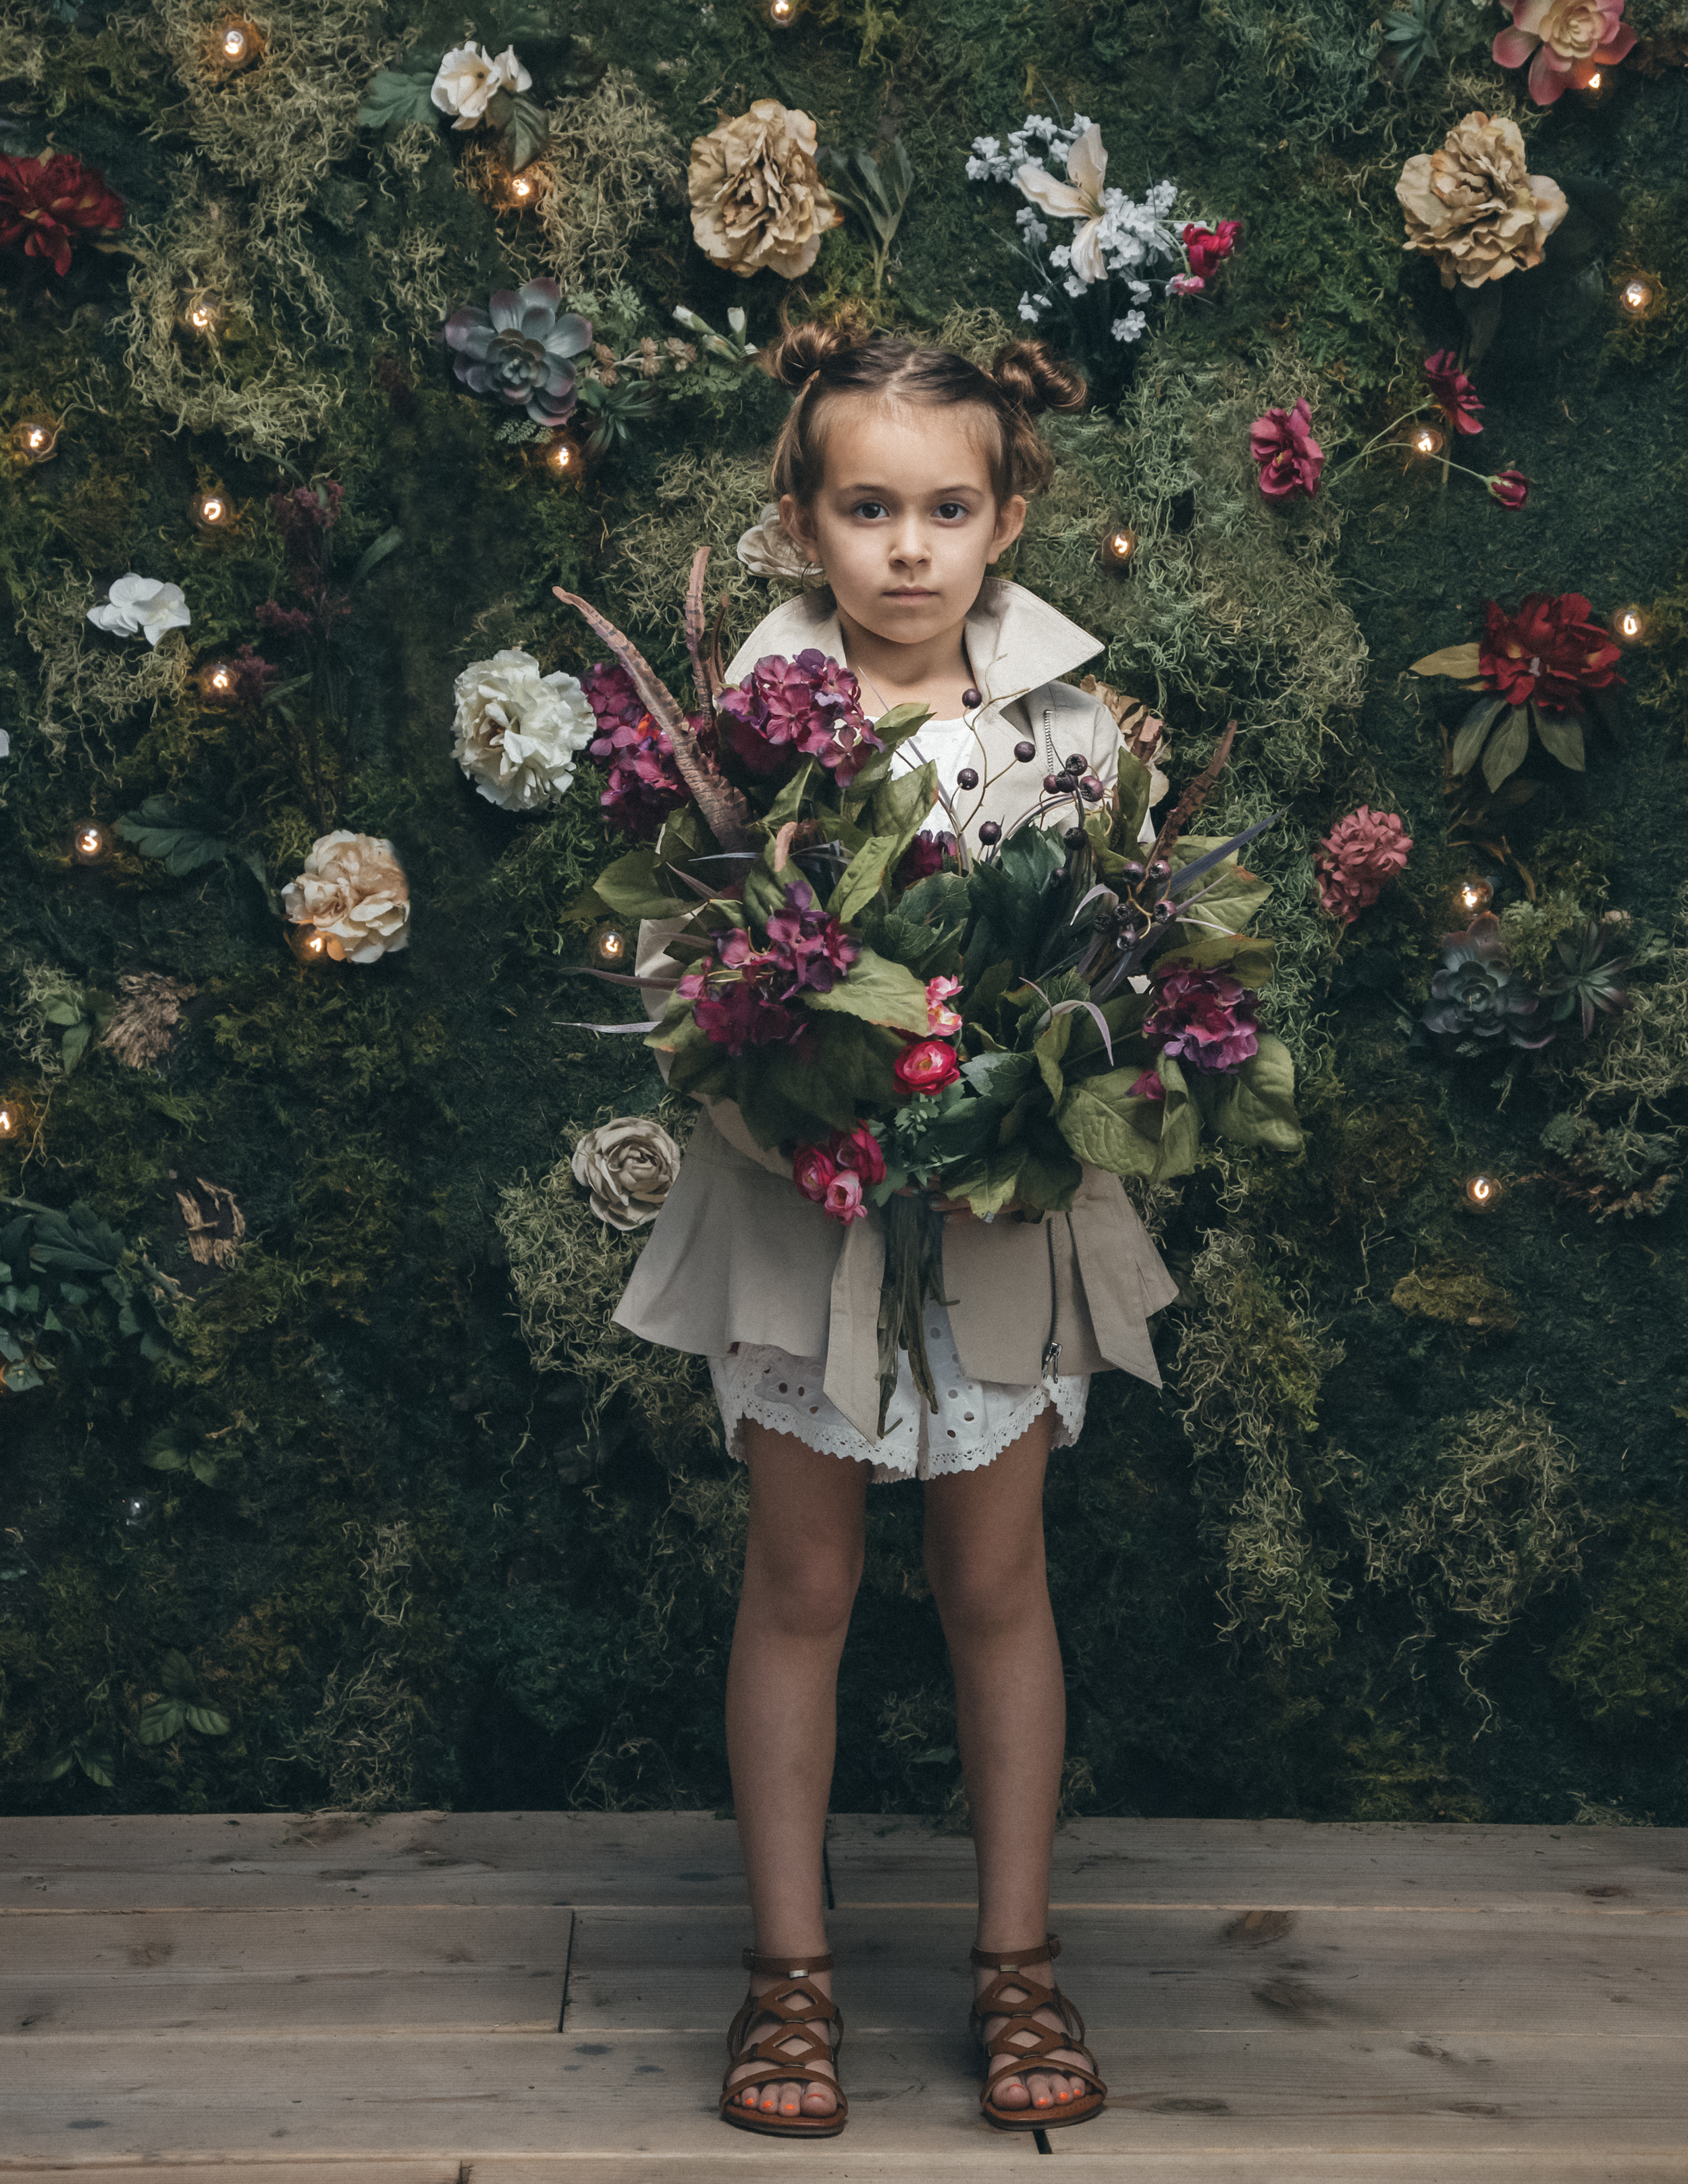 girl with flowers editorial photography by the skulls